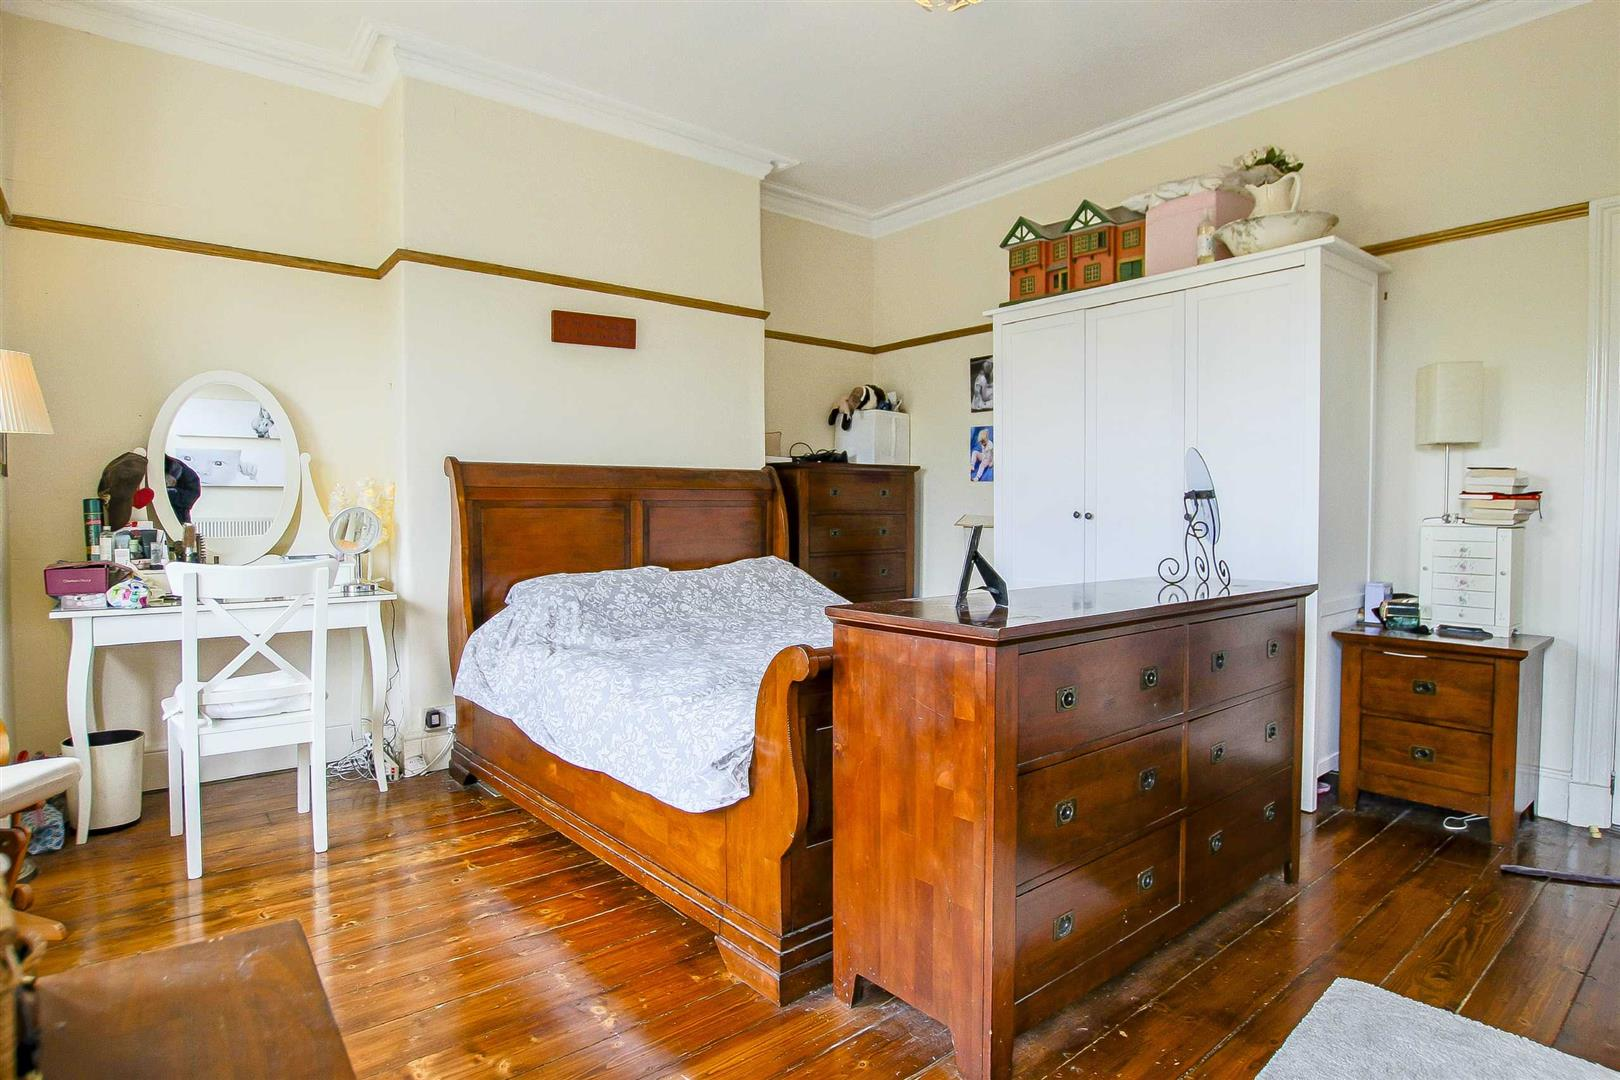 5 Bedroom Terraced House For Sale - Image 26